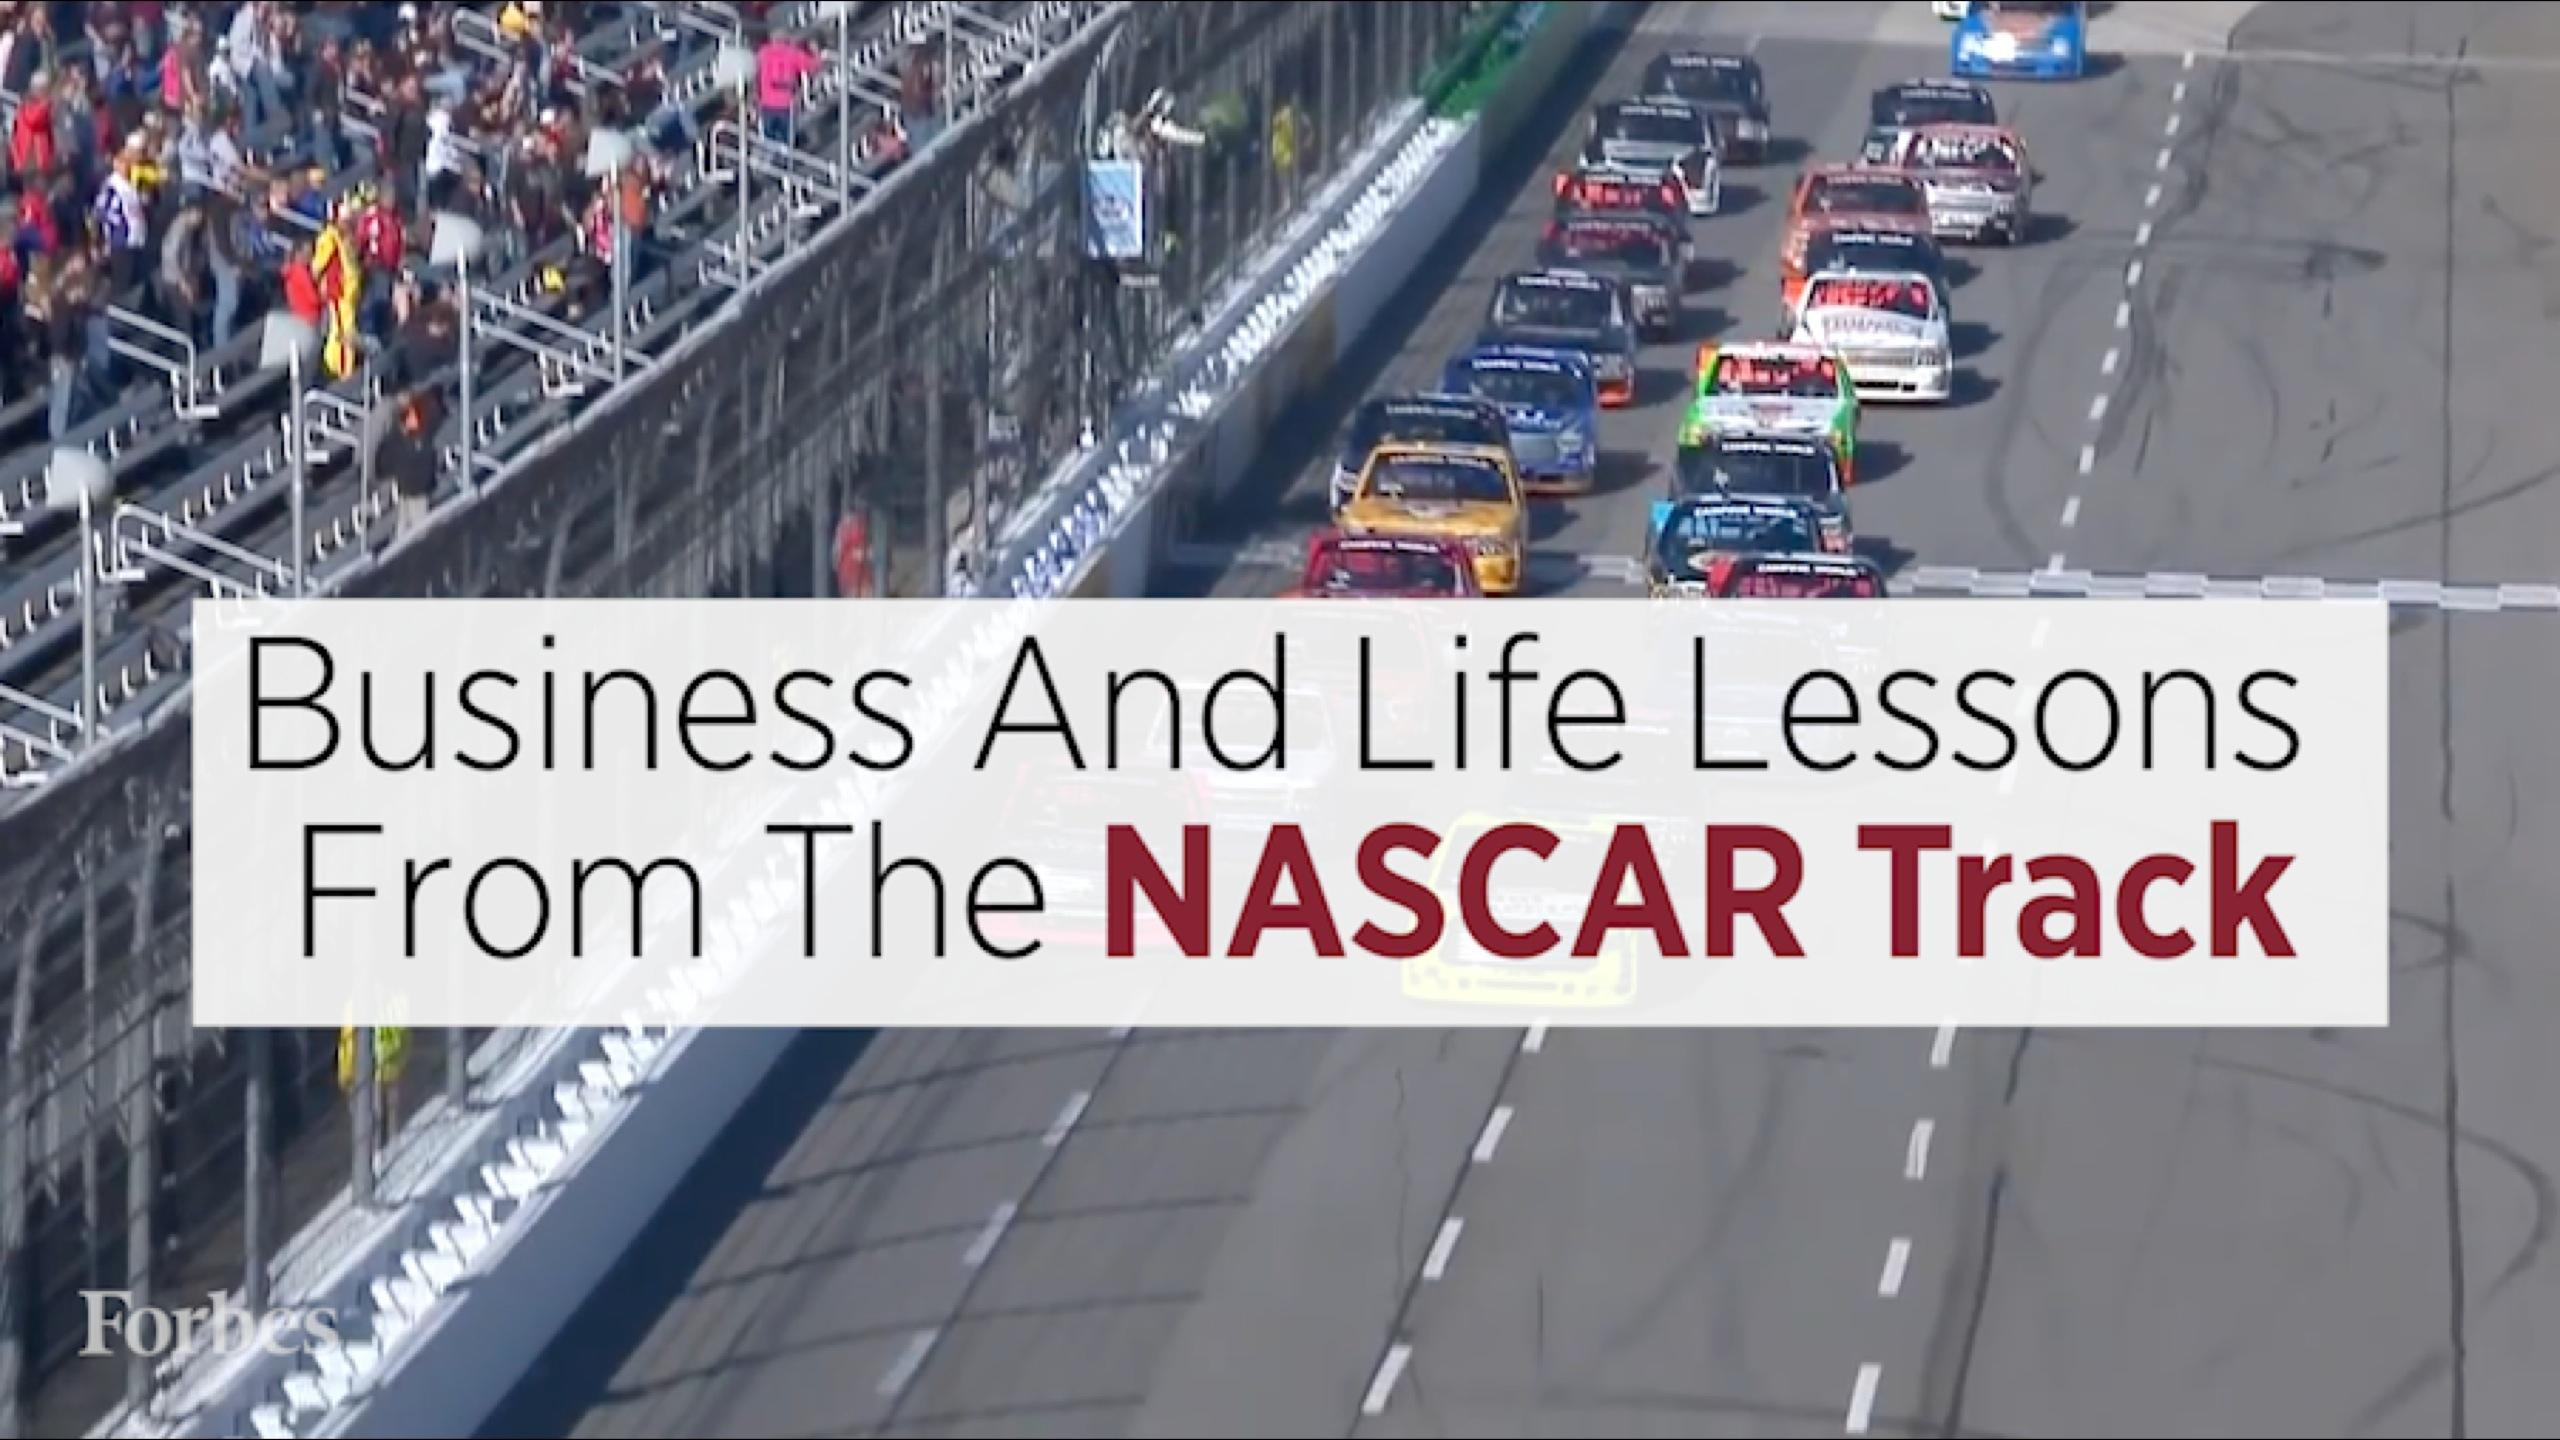 a career as a nascar driver essay What is the yearly salary of a nascar driver figuring out the yearly salary of a nascar driver can be tricky a job description for an auto racer driver.